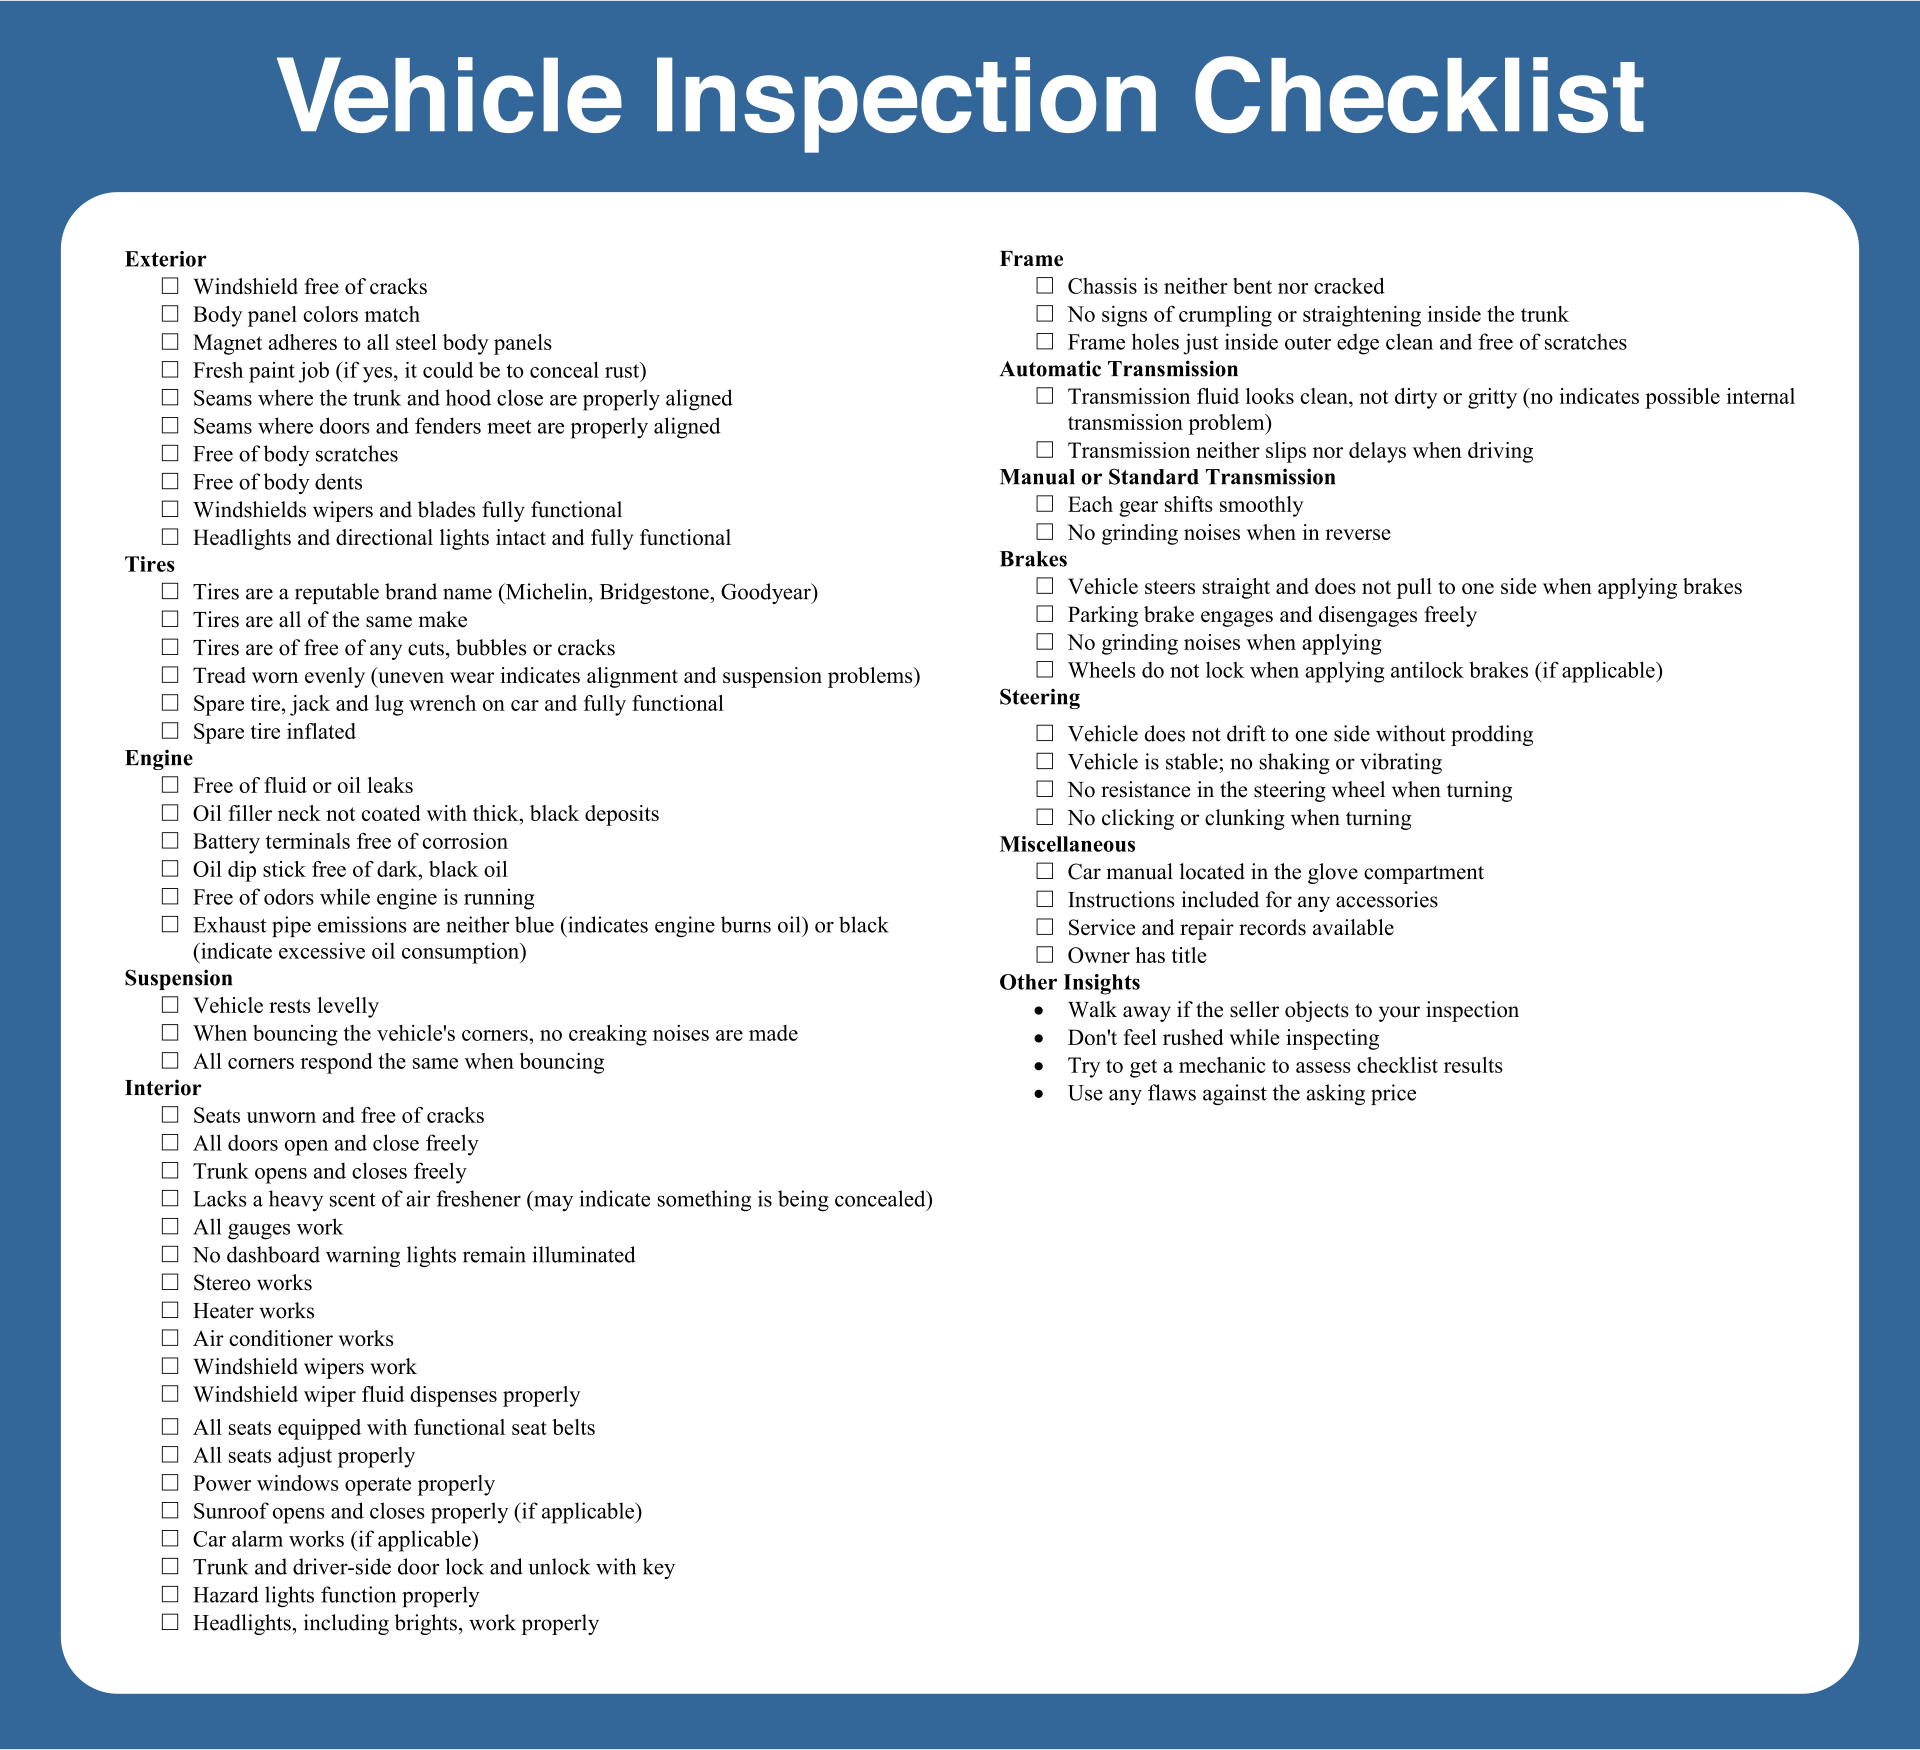 7 Best Images of Printable Vehicle Inspection Checklist ...